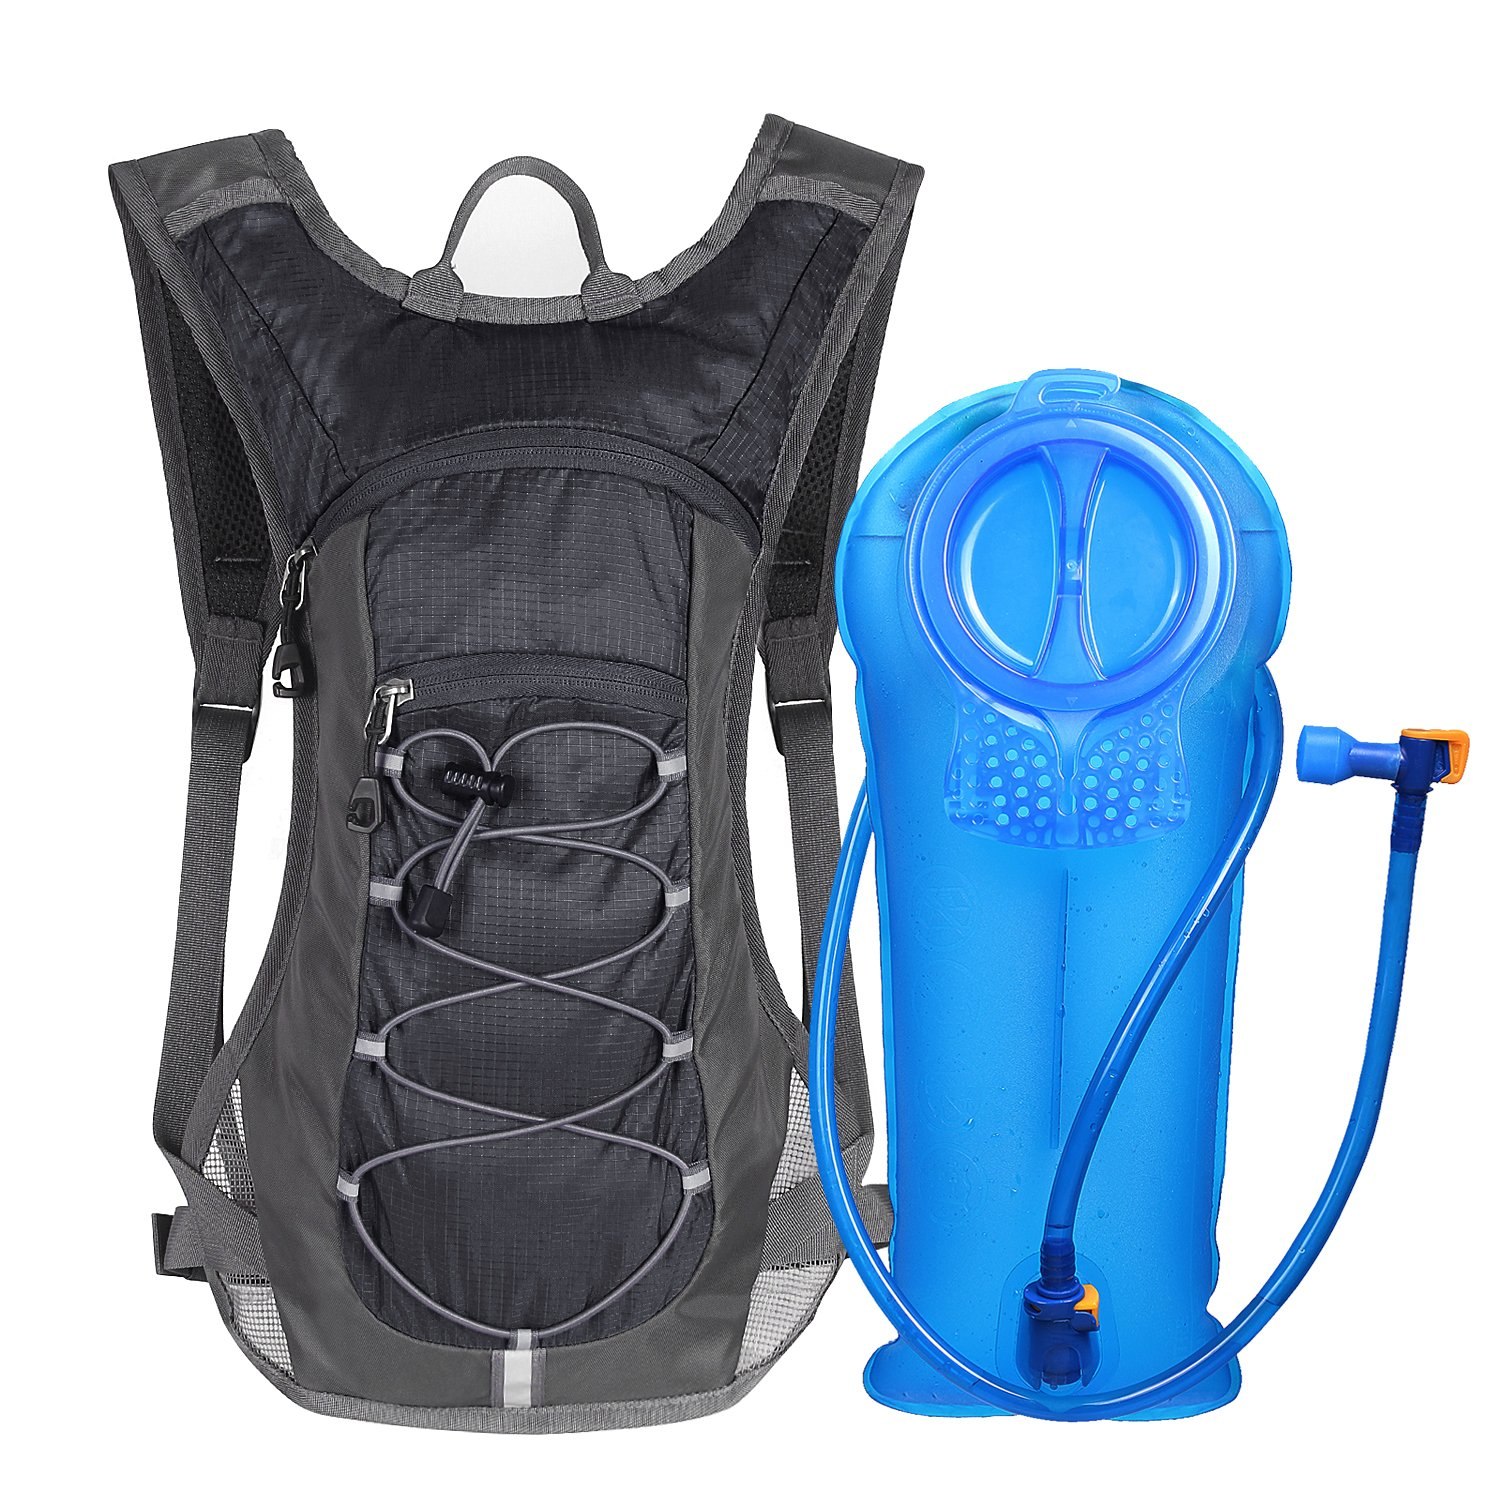 9b58799580 Amazon.com : Unigear Hydration Pack Backpack with 70 oz 2L Water Bladder  for Running, Hiking, Cycling, Climbing, Camping, Biking (Black) : Sports &  Outdoors